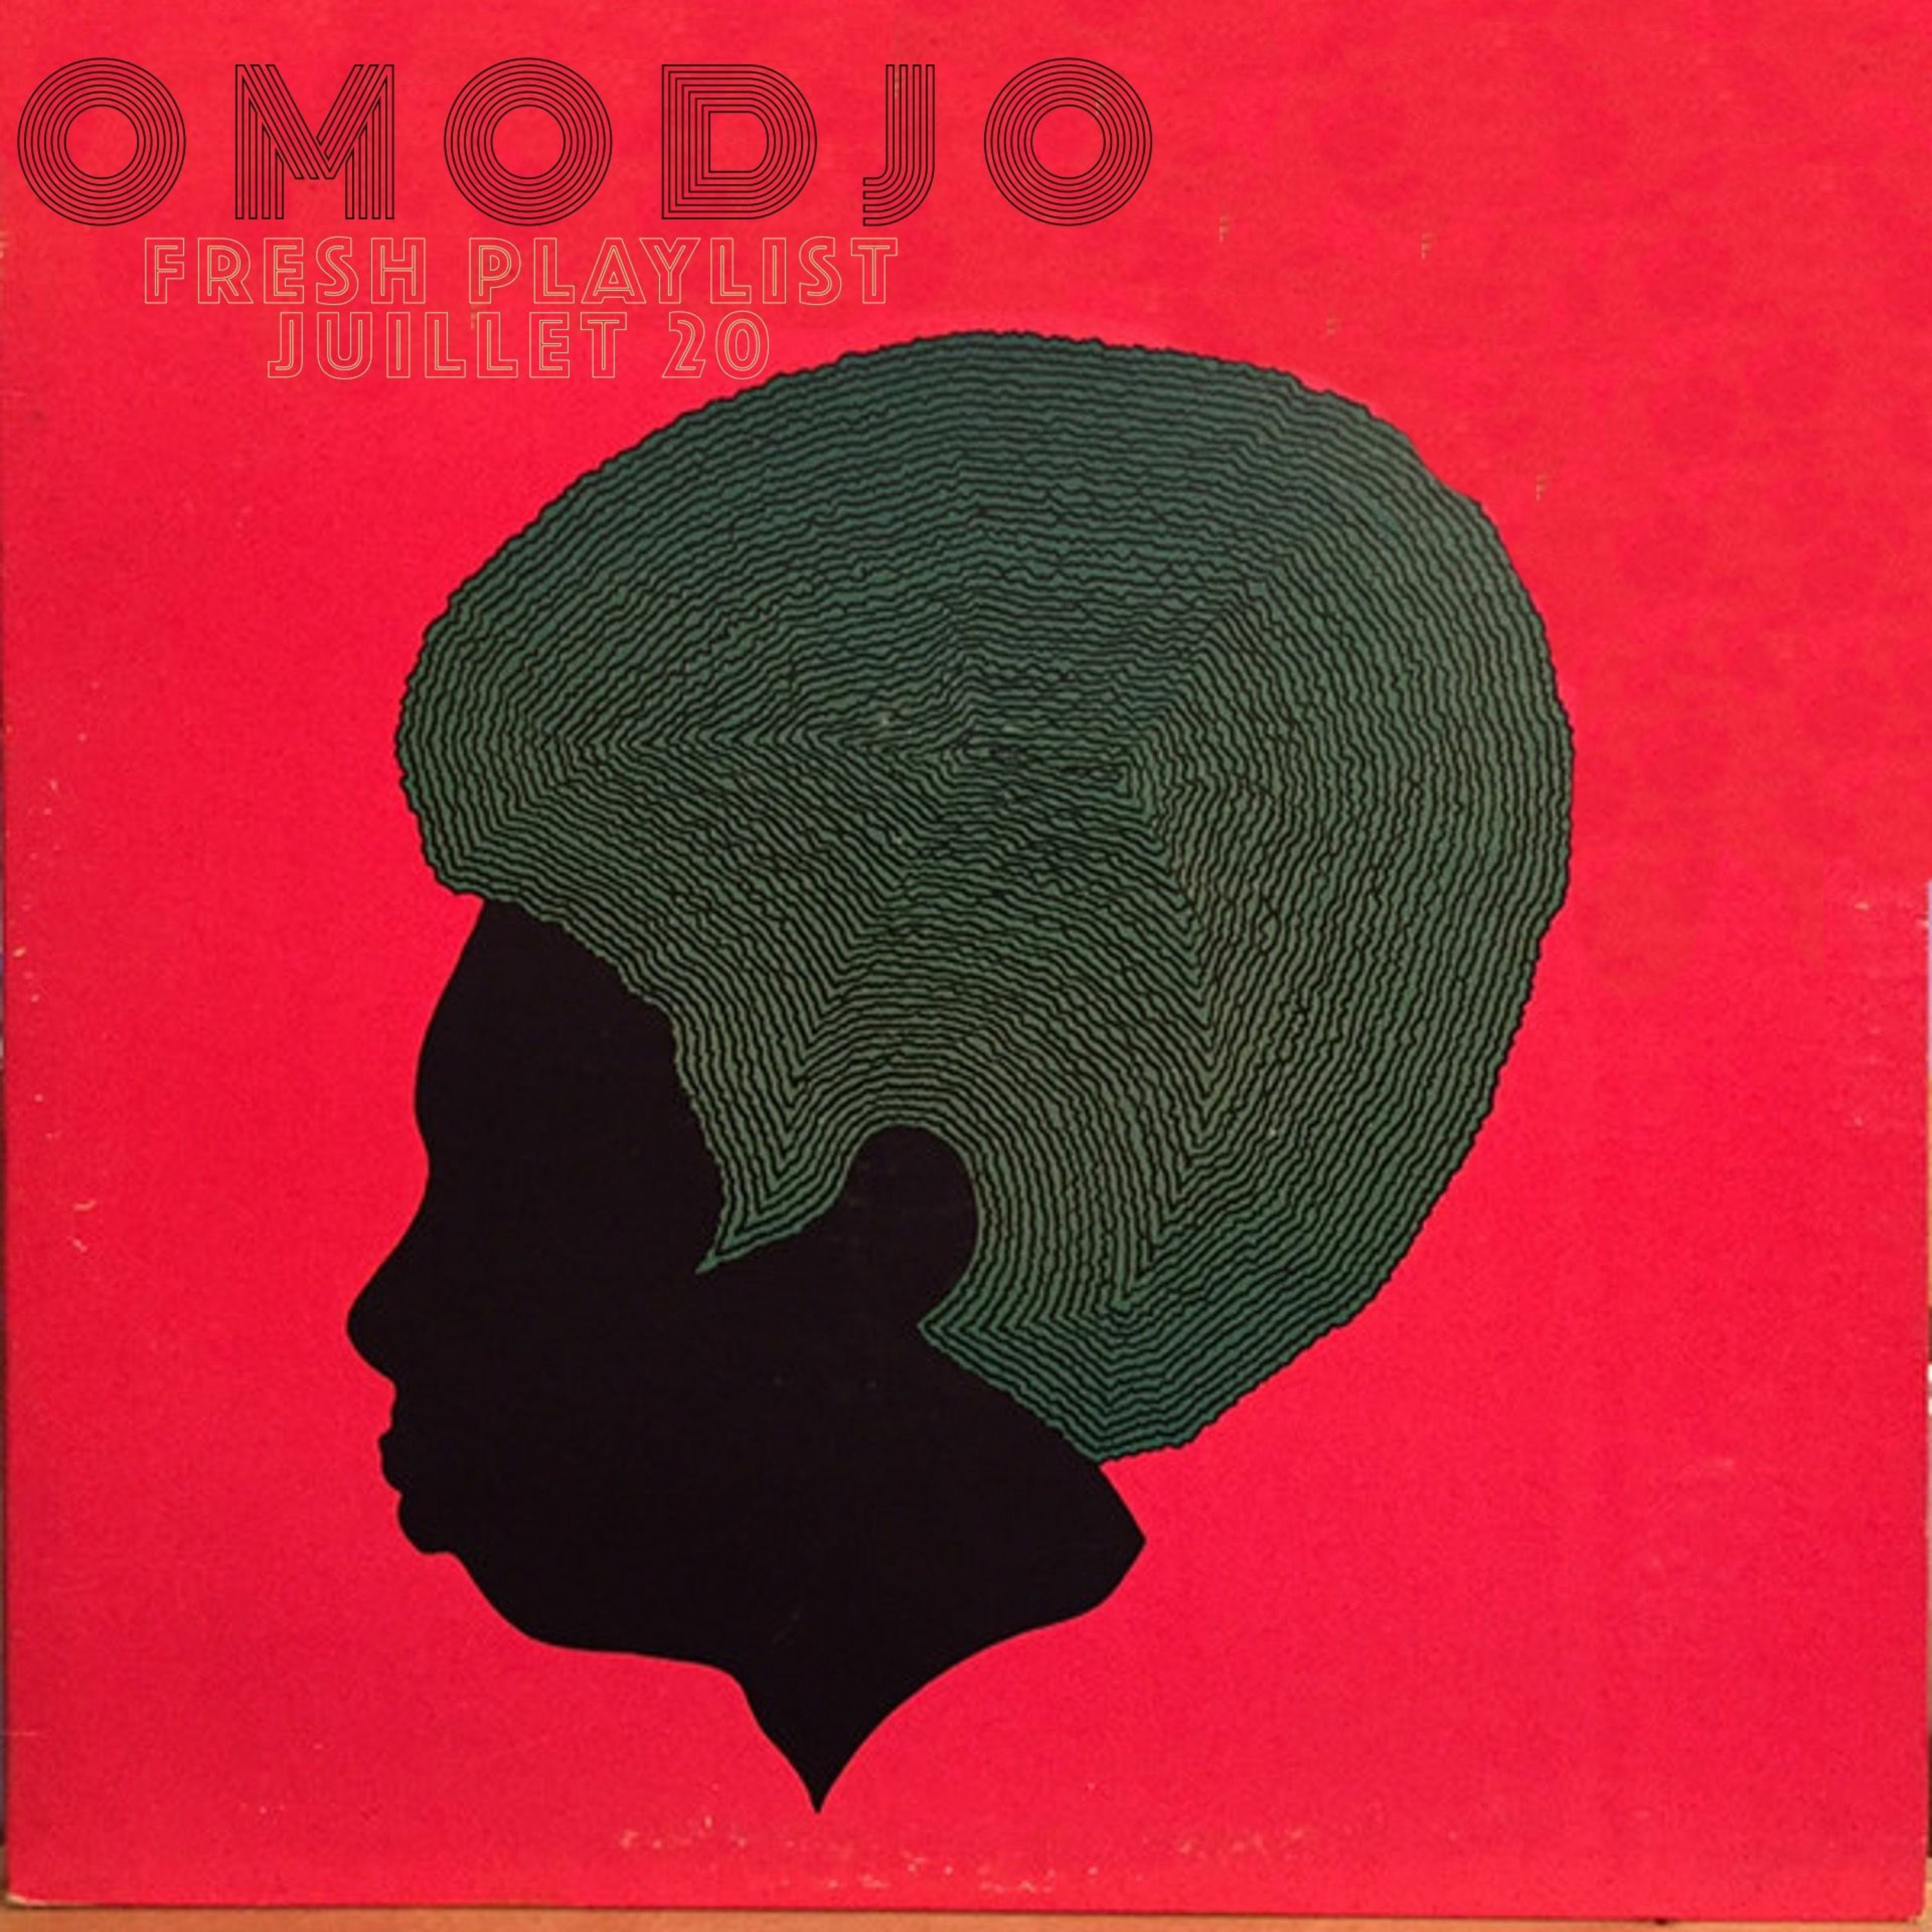 PLAYLIST - PLAY ! OMODJO juillet 2020 - continuous mix